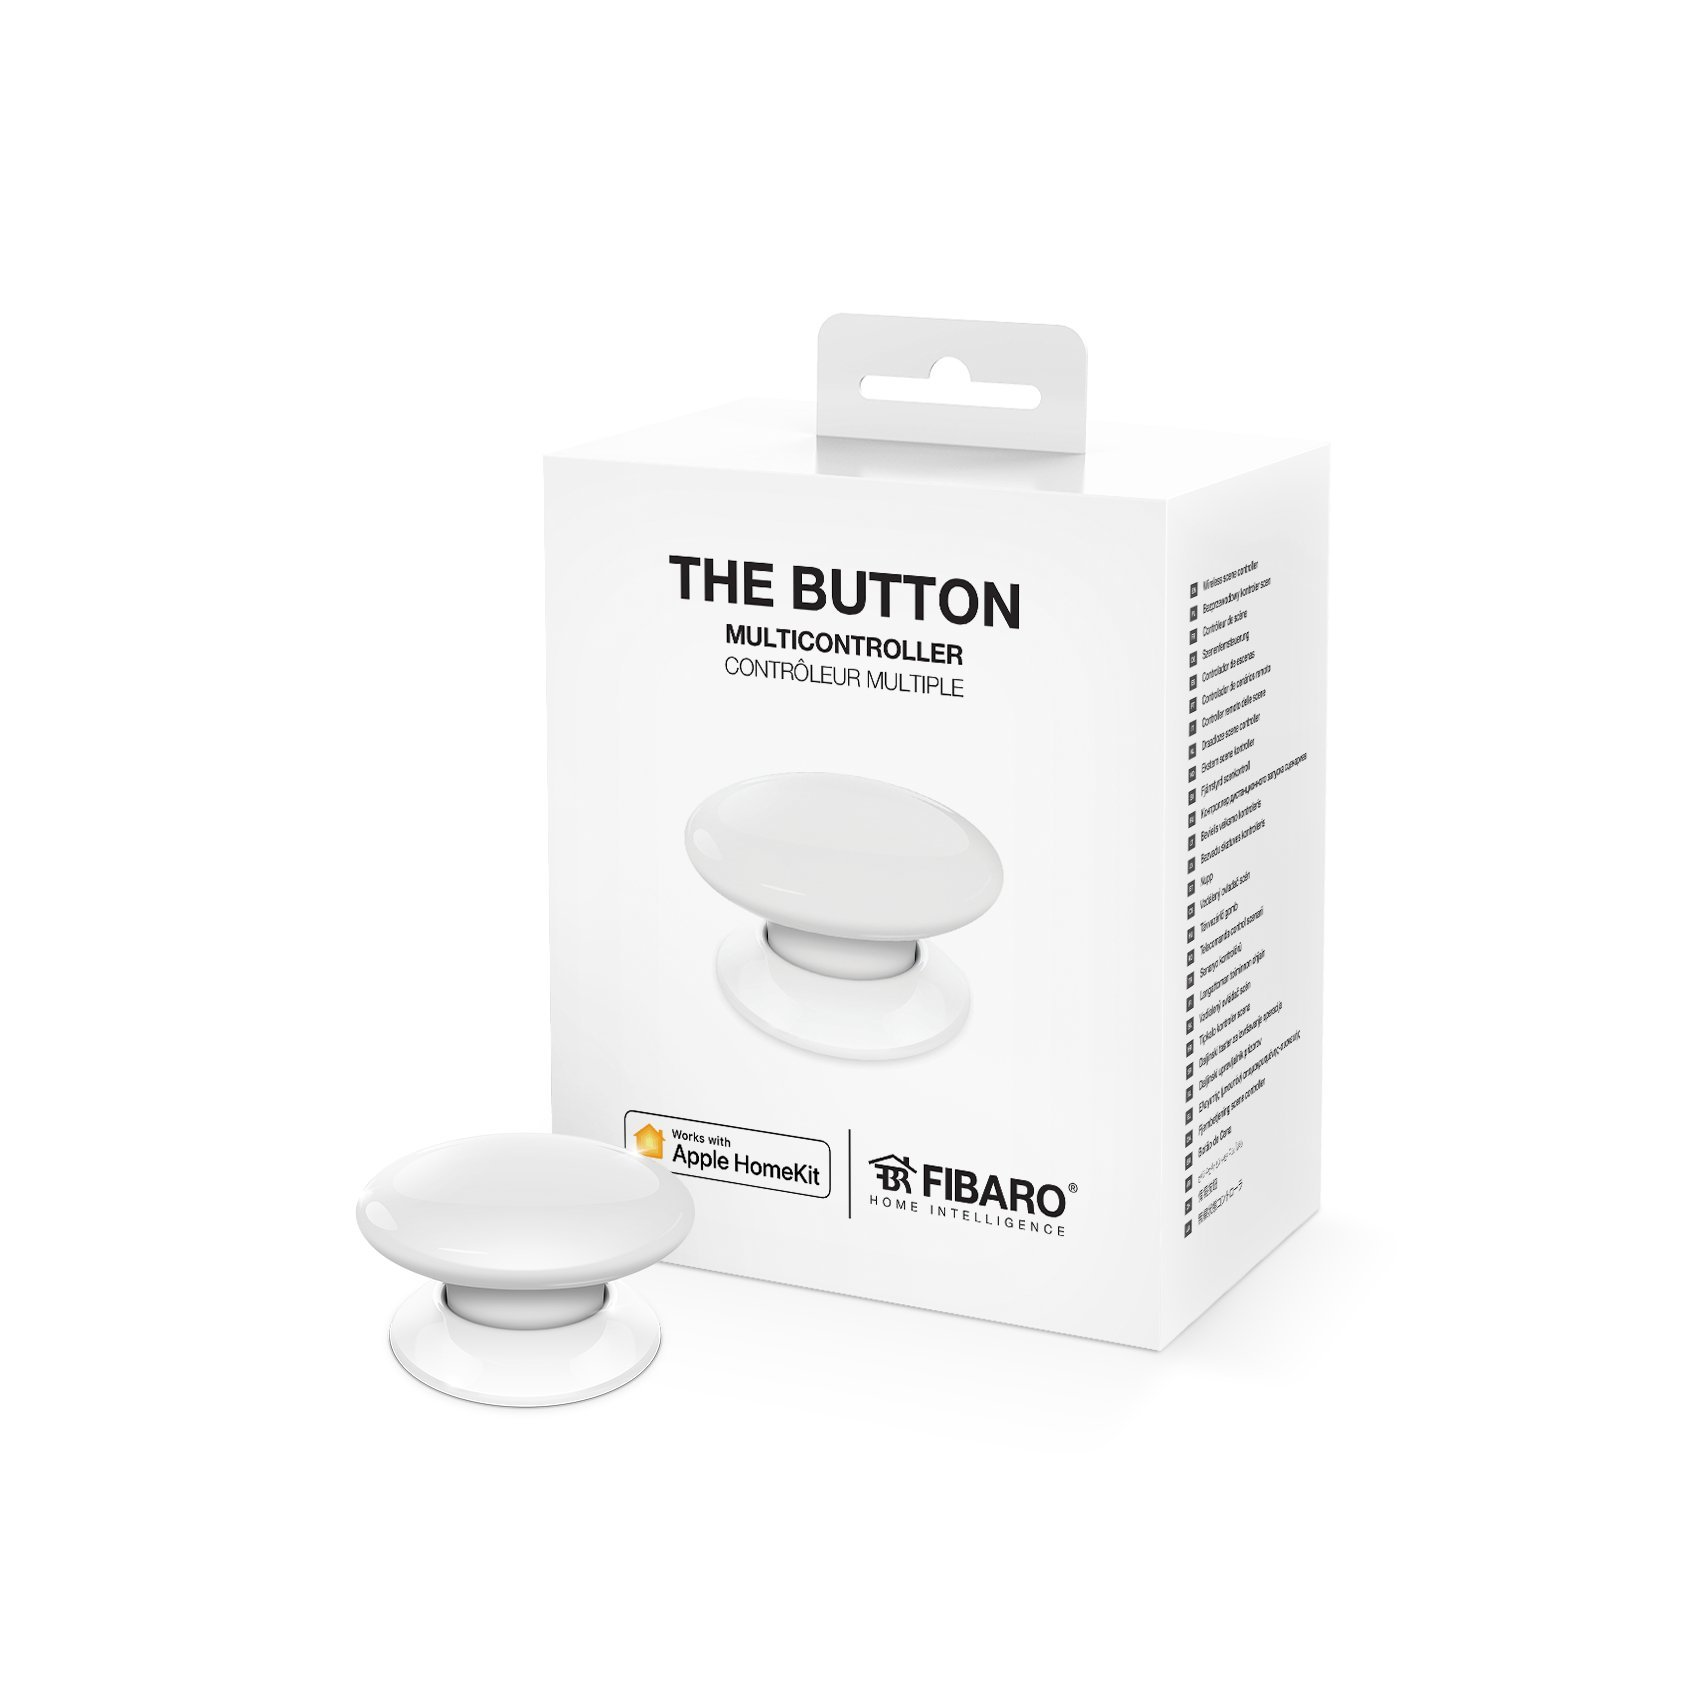 Fibaro The Button blanc pour Apple Homekit